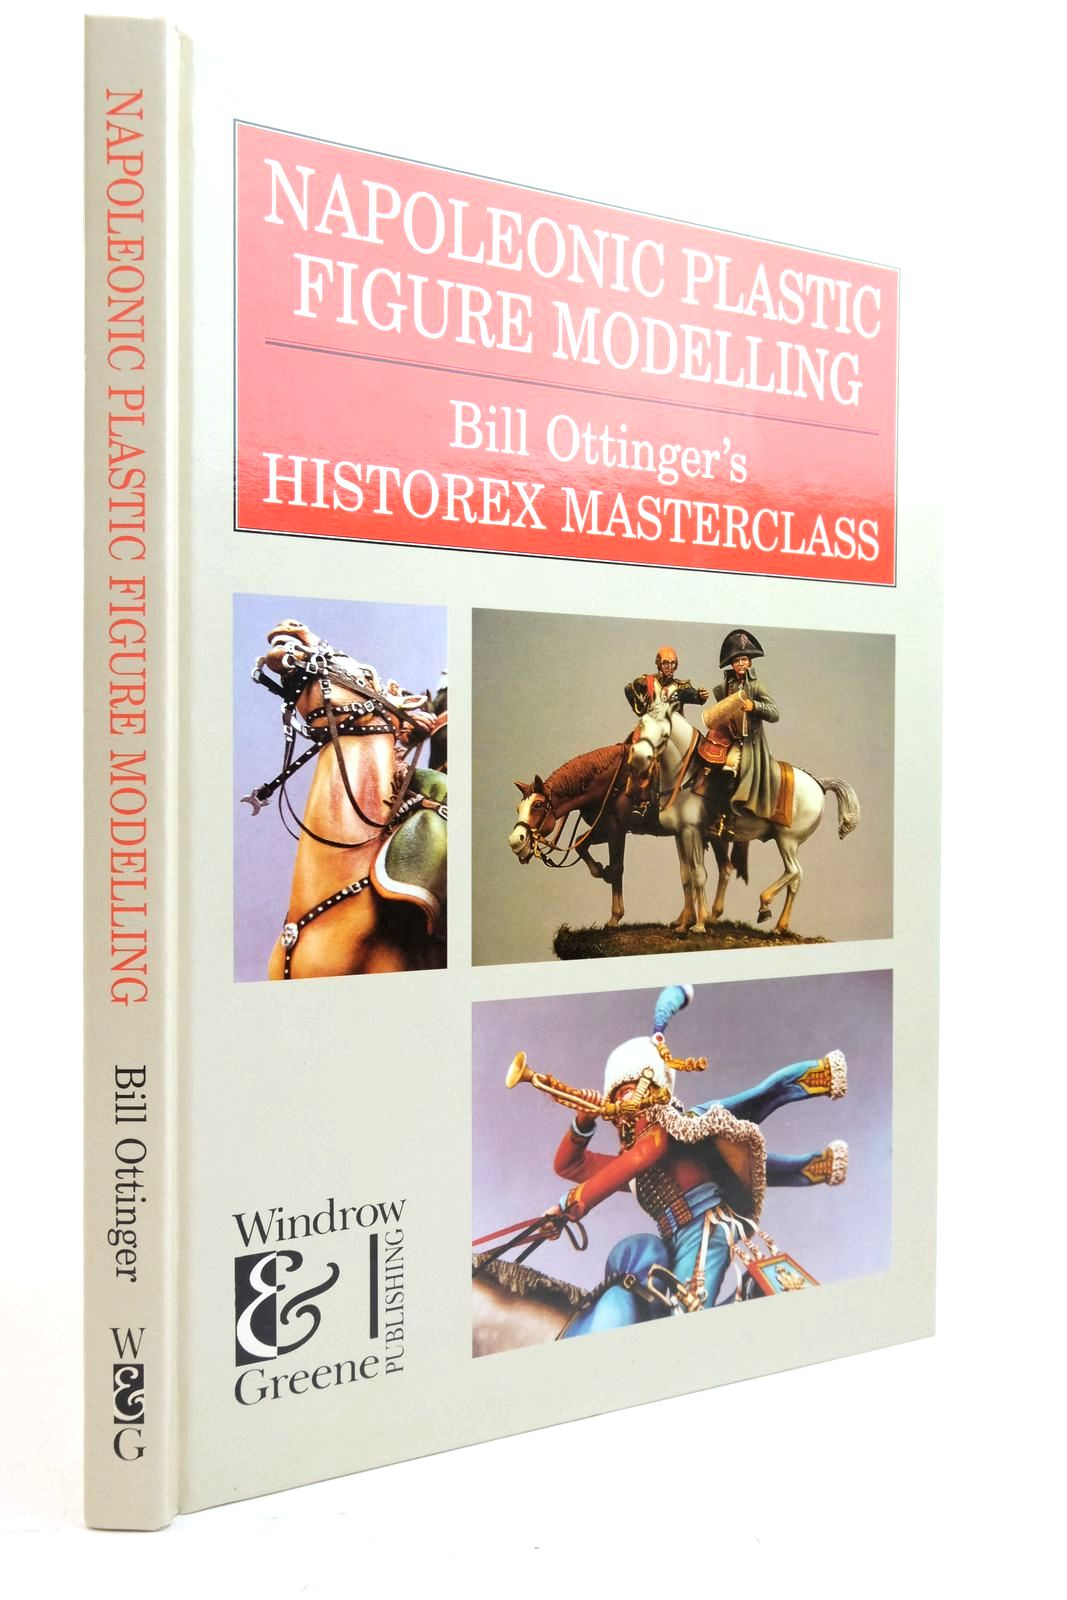 Photo of NAPOLEONIC PLASTIC FIGURE MODELLING written by Ottinger, Bill published by Windrow & Greene (STOCK CODE: 2134518)  for sale by Stella & Rose's Books